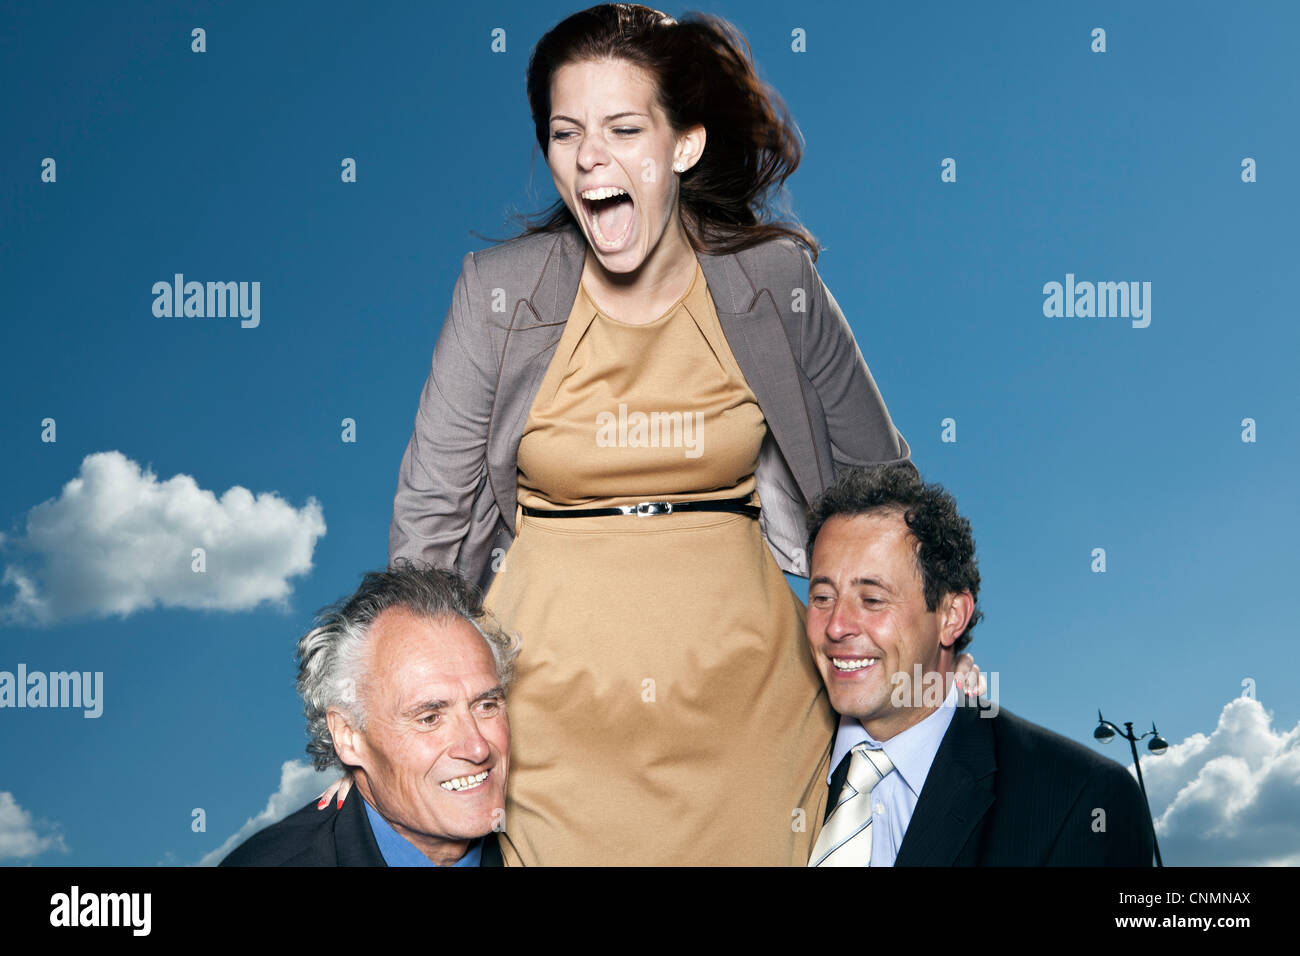 Businesswoman climbing on colleagues - Stock Image